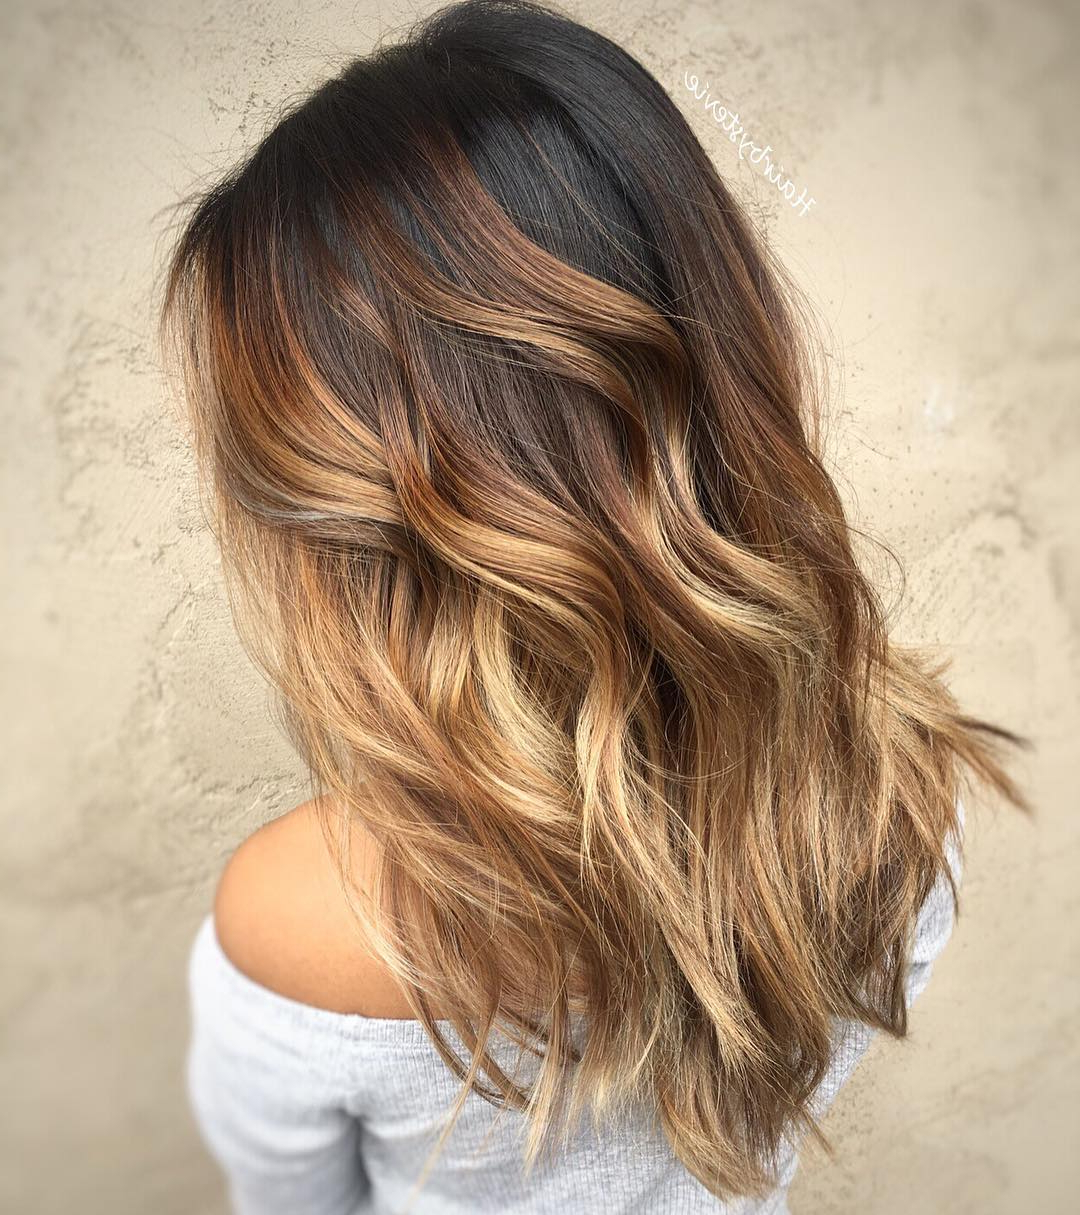 20 Sweet Caramel Balayage Hairstyles For Brunettes And Beyond Inside Well Liked Effortless Balayage Bob Hairstyles (View 7 of 20)